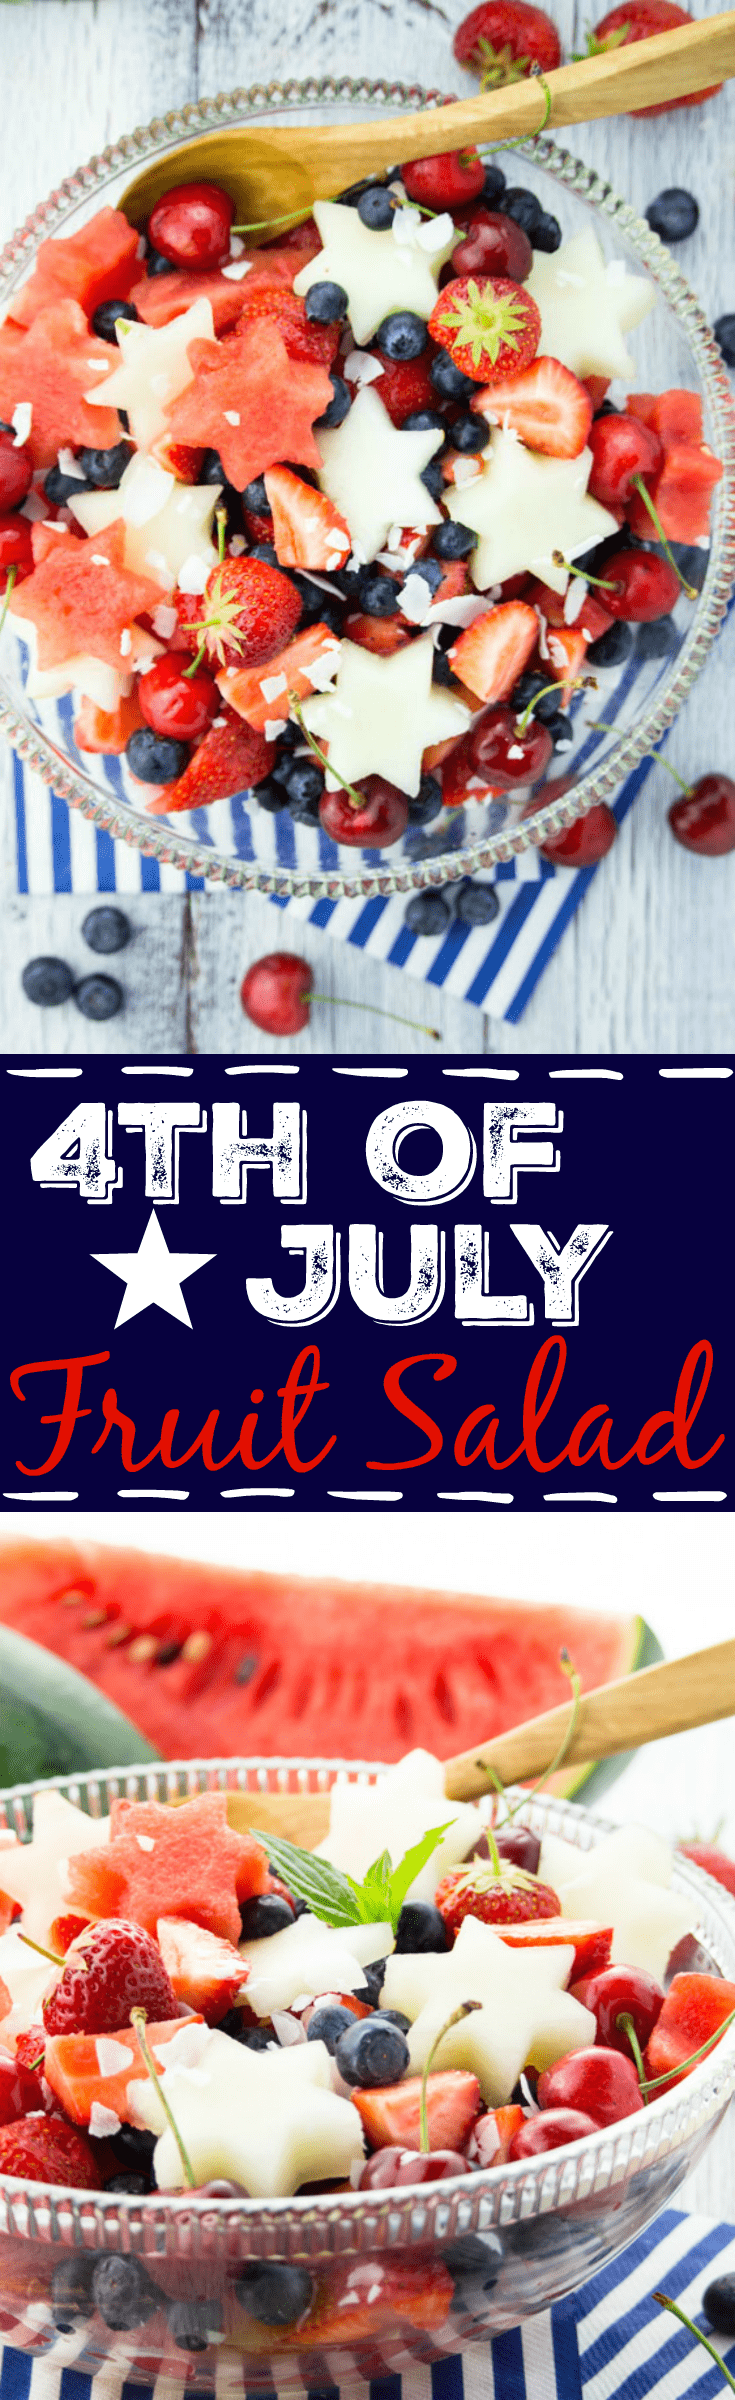 4th of July Fruit Salad